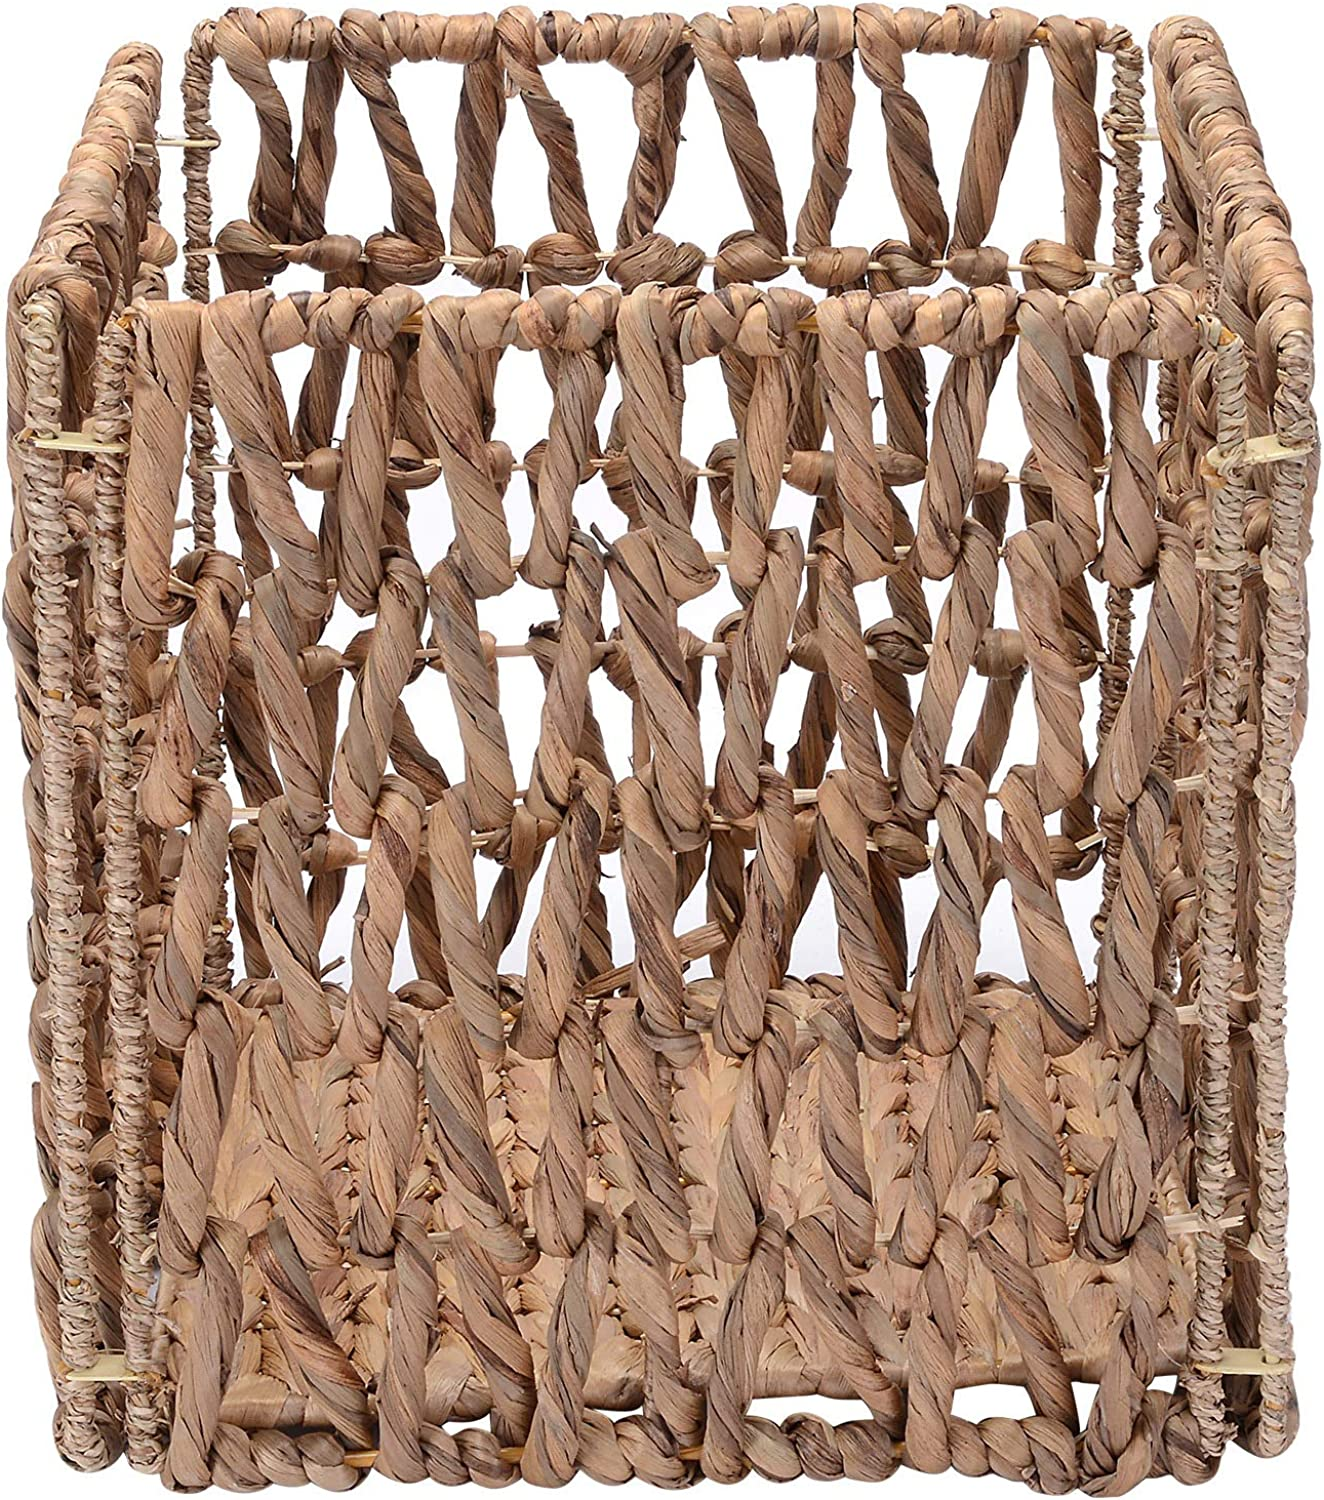 Villacera 12-Inch Square Hand-Woven Wicker Storage Bin, Foldable Baskets made of Water Hyacinth   Wire Frame   Set of 2